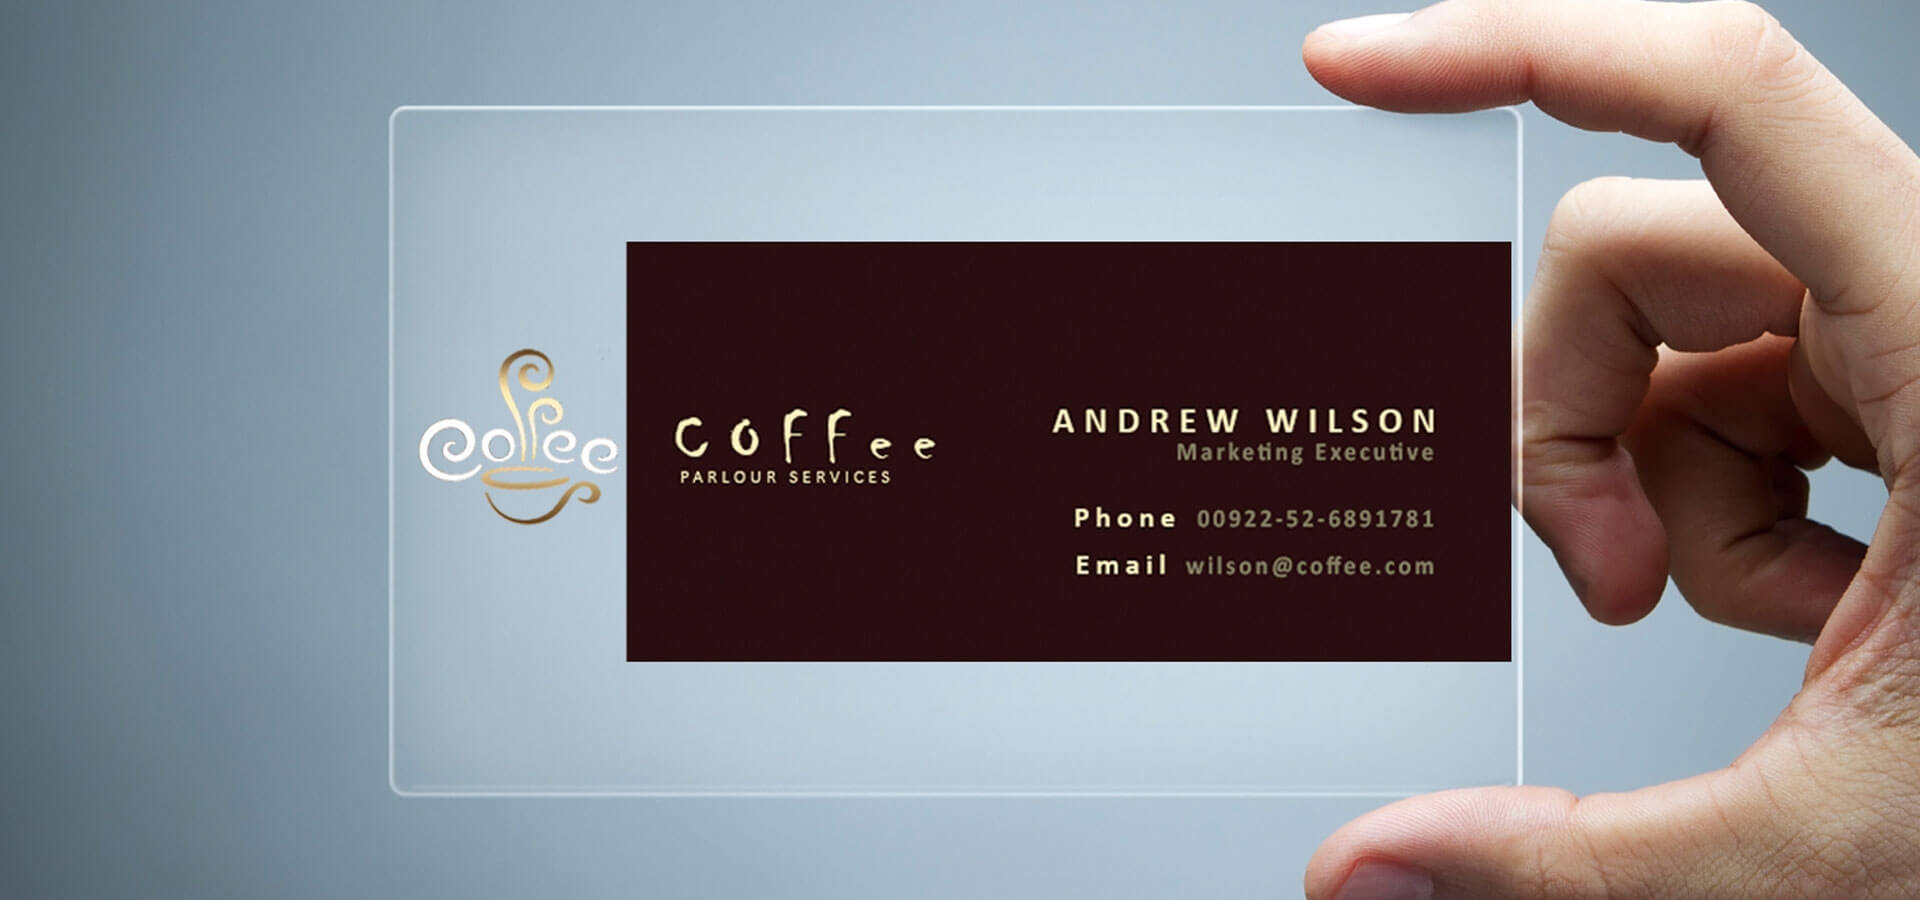 26+ Transparent Business Card Templates - Illustrator, Ms inside Pages Business Card Template